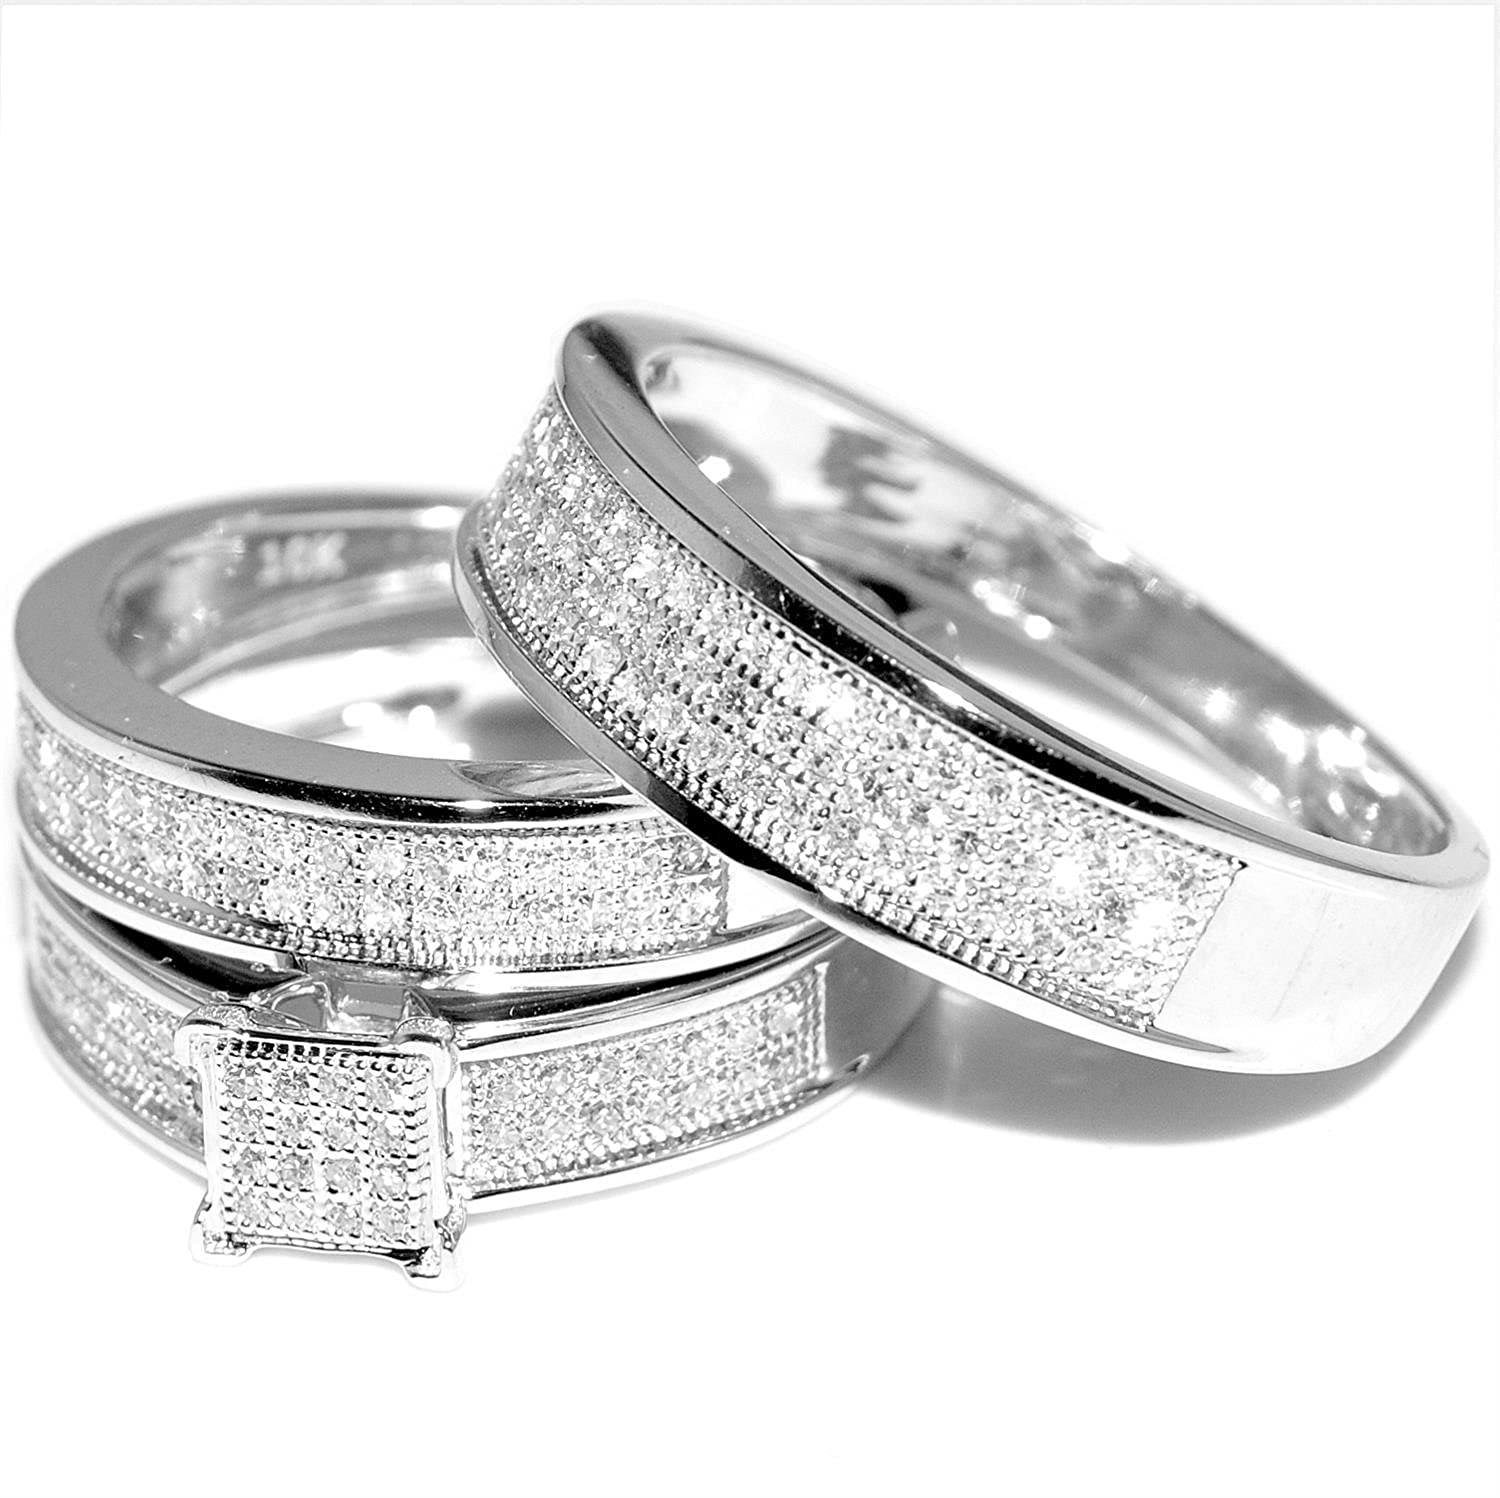 White Gold Trio Wedding Set Mens Womens Wedding Rings Matching 0.40cttw  Diamond 1b8869220